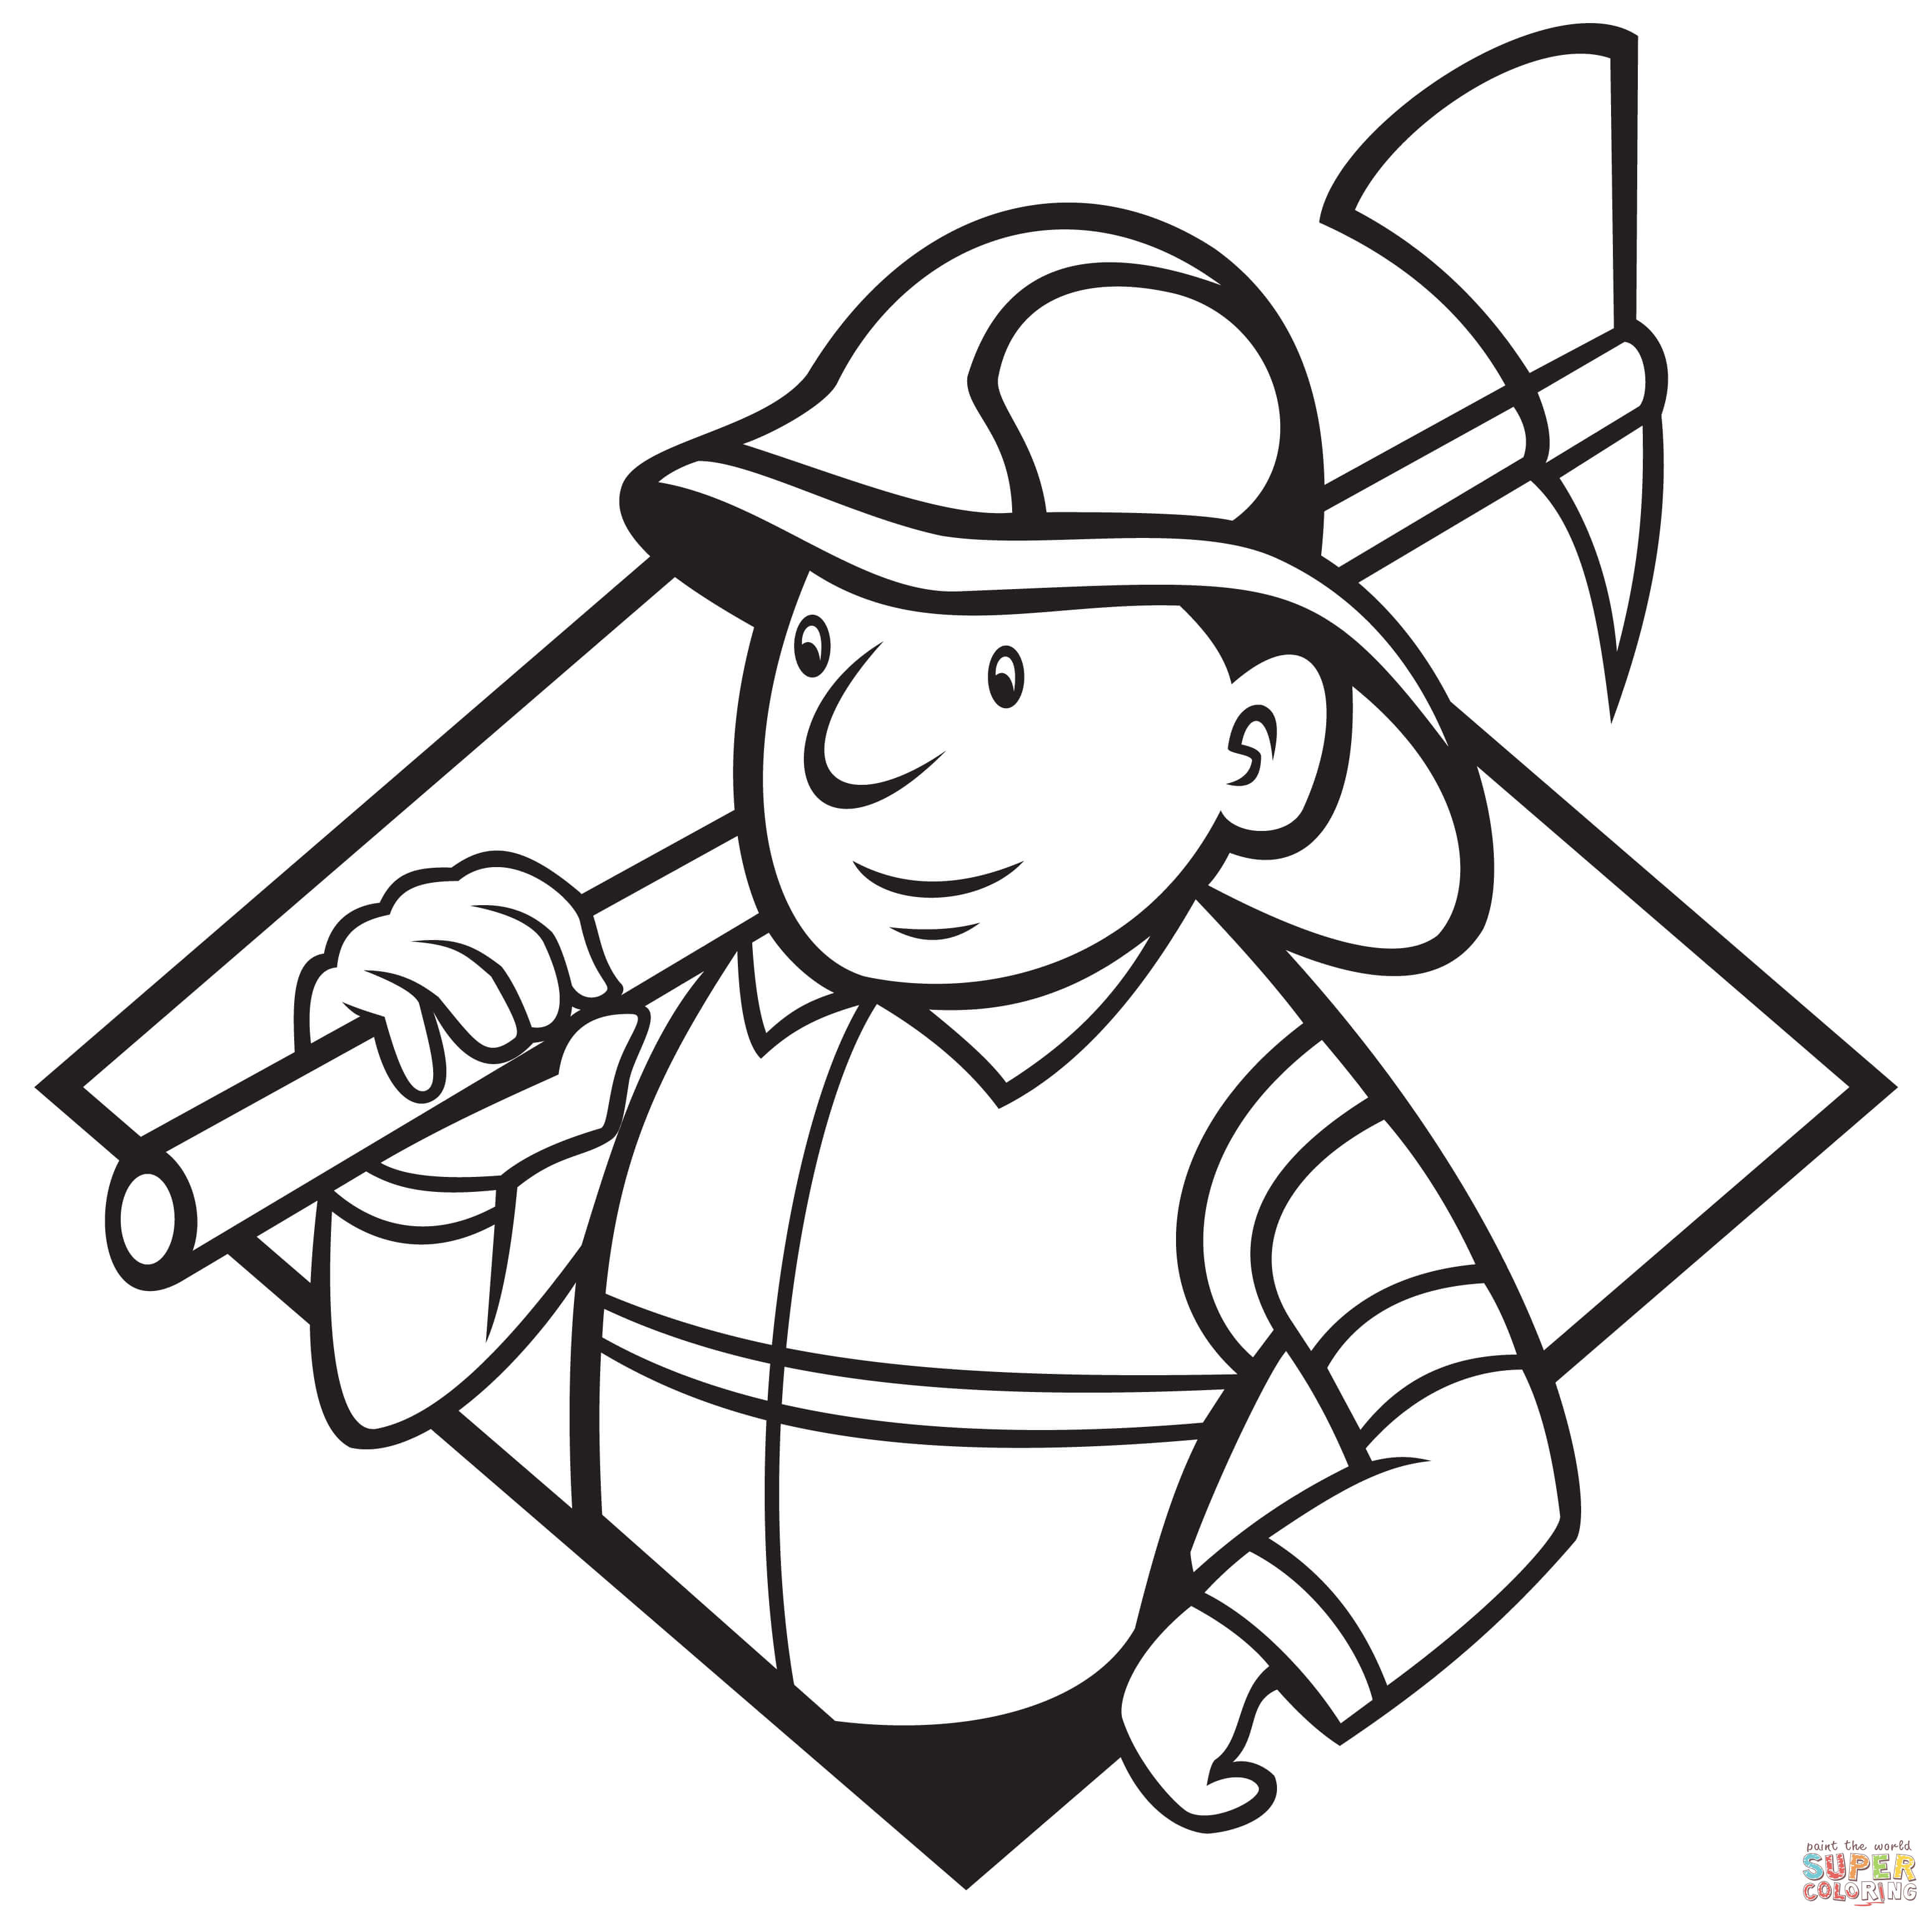 3100x3080 Fireman Helmet And Axes Coloring Page Free Printable Pages